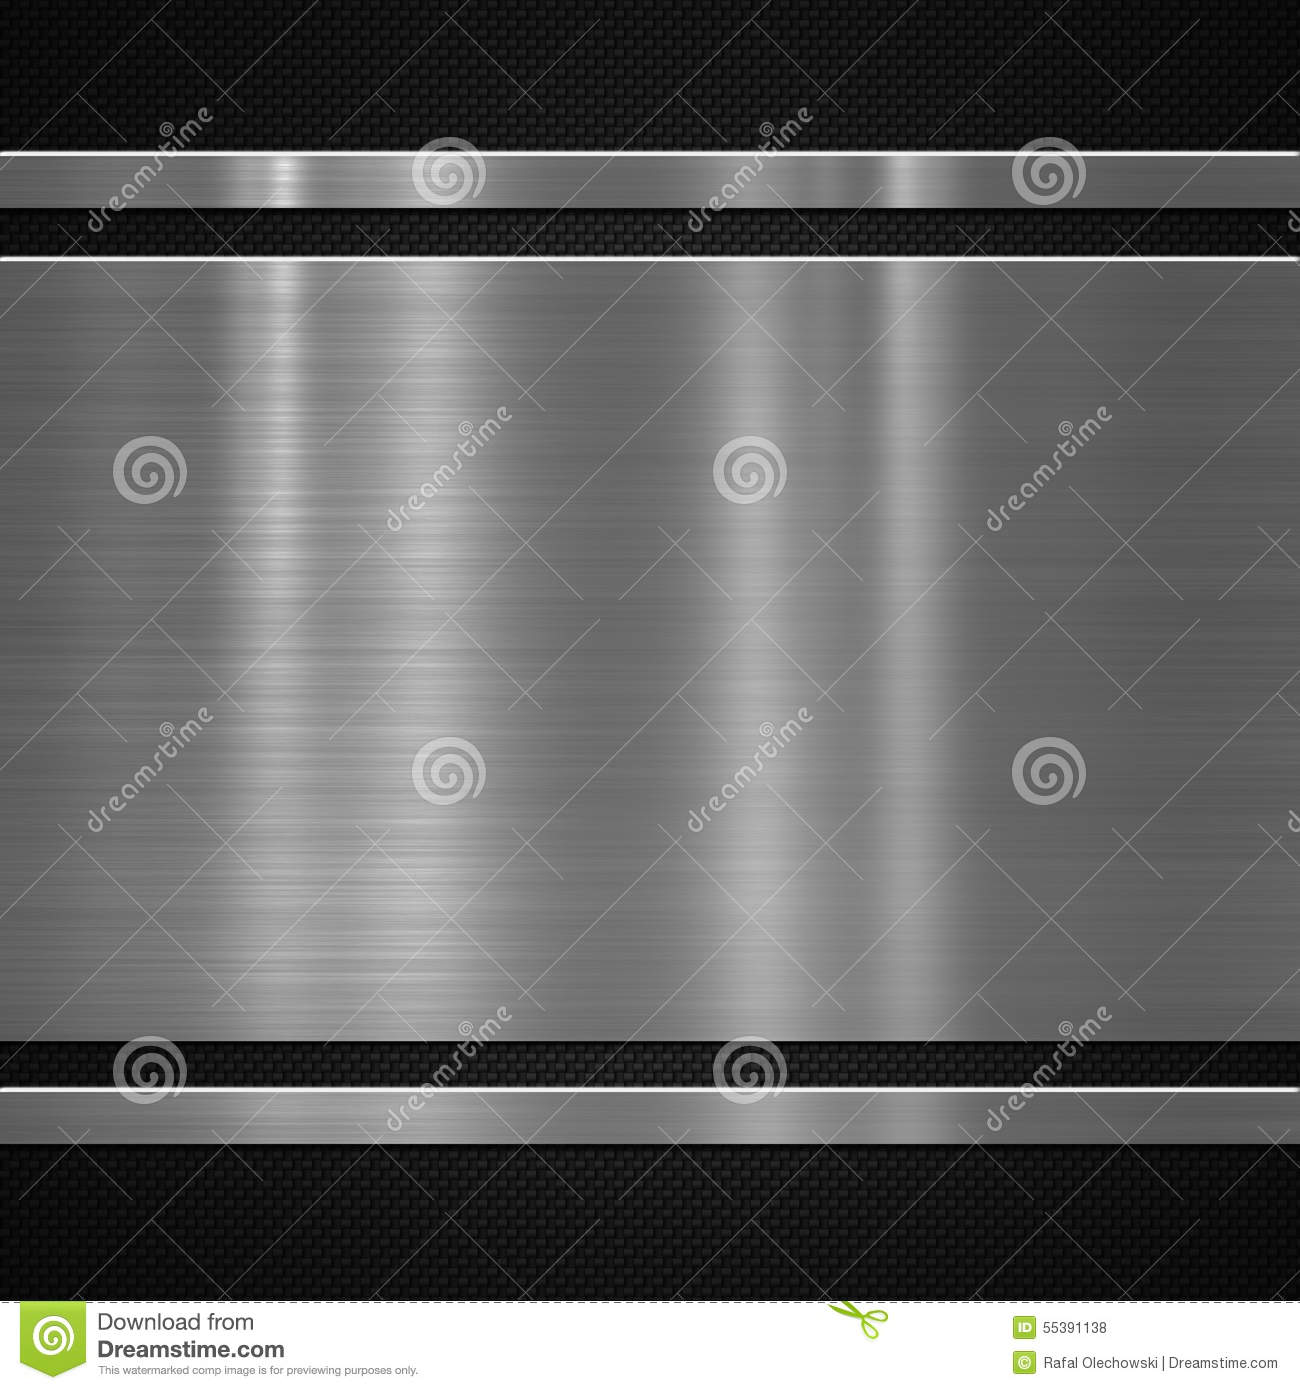 Metal plate on carbon background